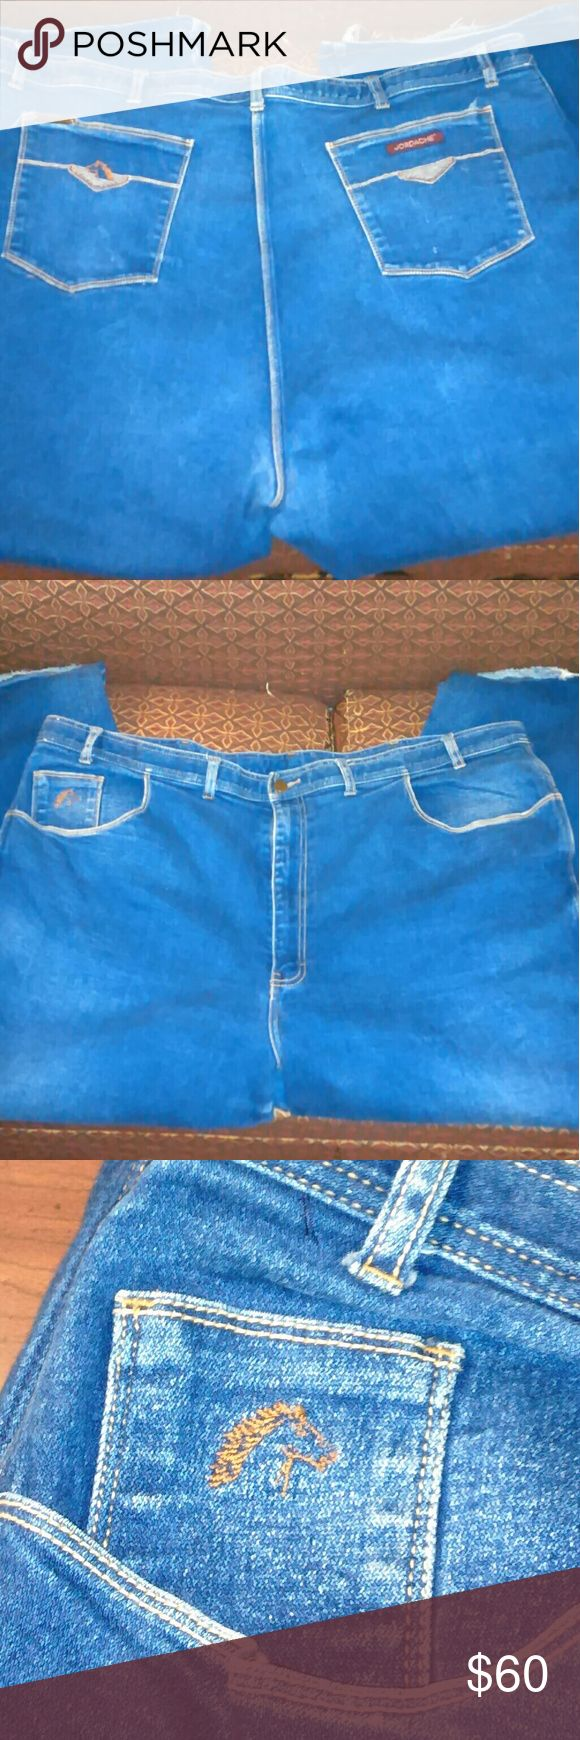 """VINTAGE JORDACHE WOMEN'S FULLER FIT JEANS 50X34 Vintage 80's Jordache Fuller Fit Women's Jeans Size 50x34. They are a Medium Wash, Front Button Fly Zipper with the Horse 🐎 Design on back left Pocket and Horse on Small Front Pocket with Distressed Bottom Cuffs. Rare Jeans in Good Condition and Hard to Find Size.  Approximate Measurements:  Size 50x34 Waist-24"""" Front Rise-16"""" Inseam-34"""" Thigh-14"""" Cuff-11"""" Jordache Jeans Straight Leg"""